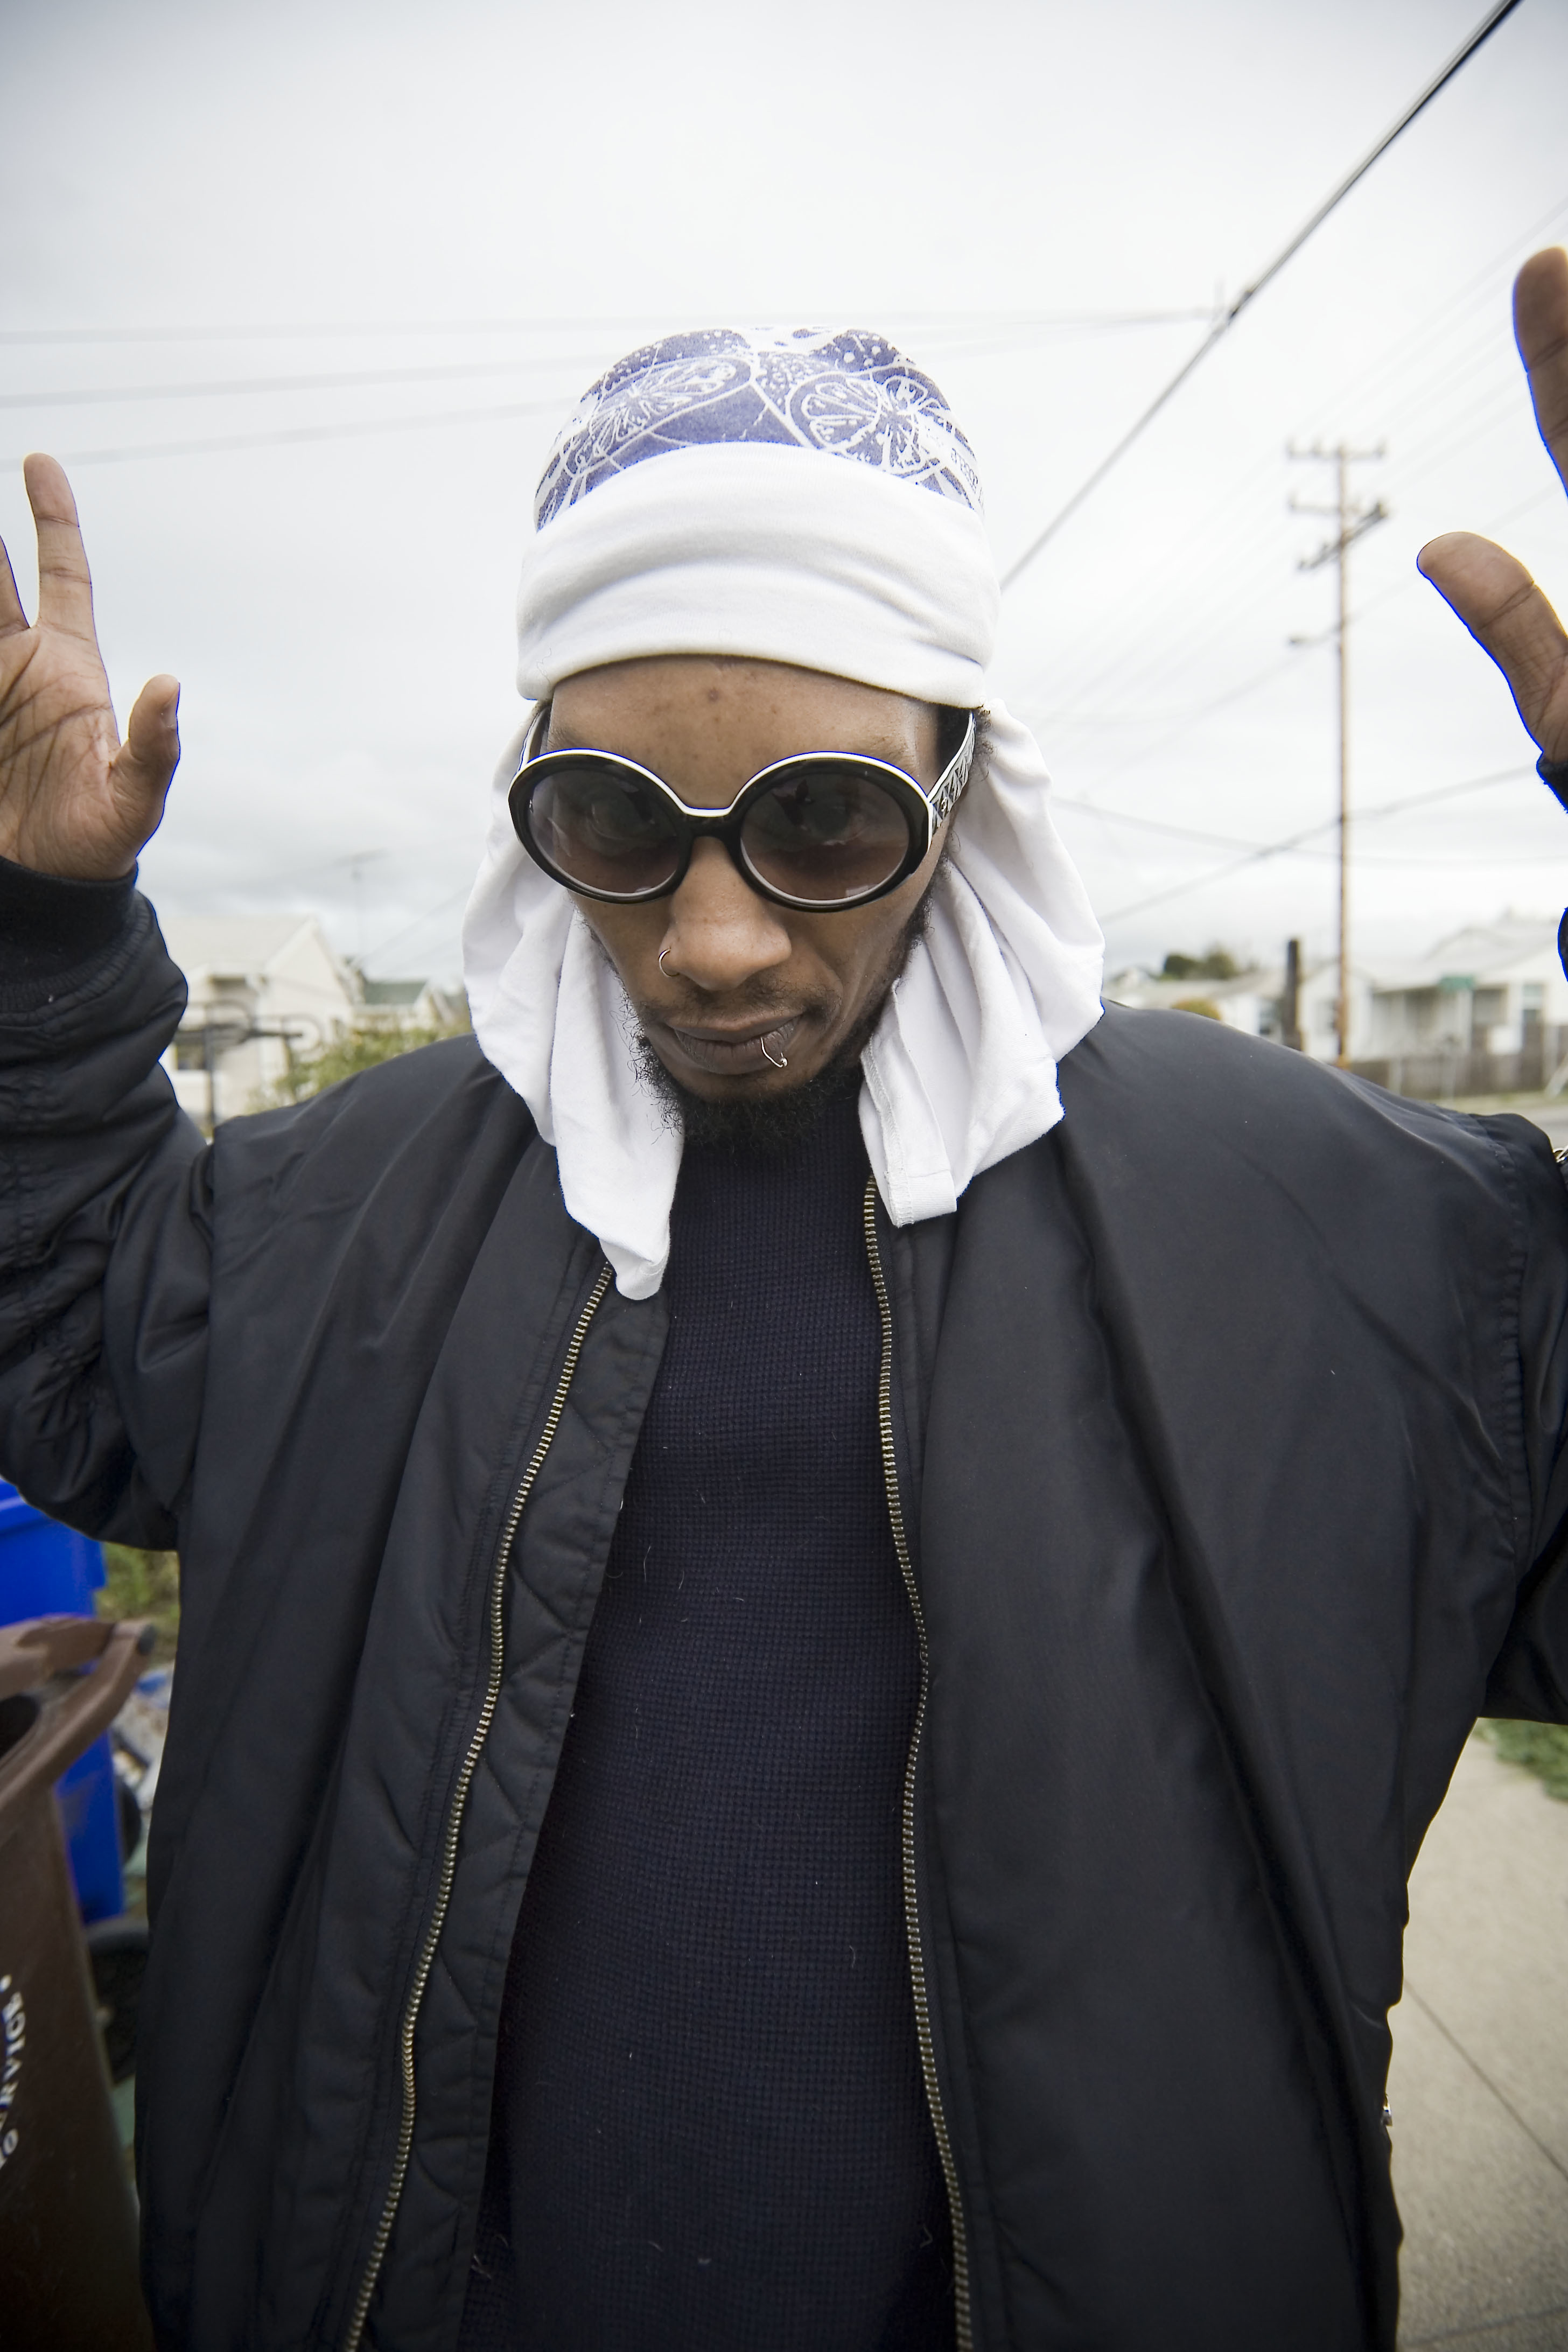 del The funky homosapien HD Wallpaper